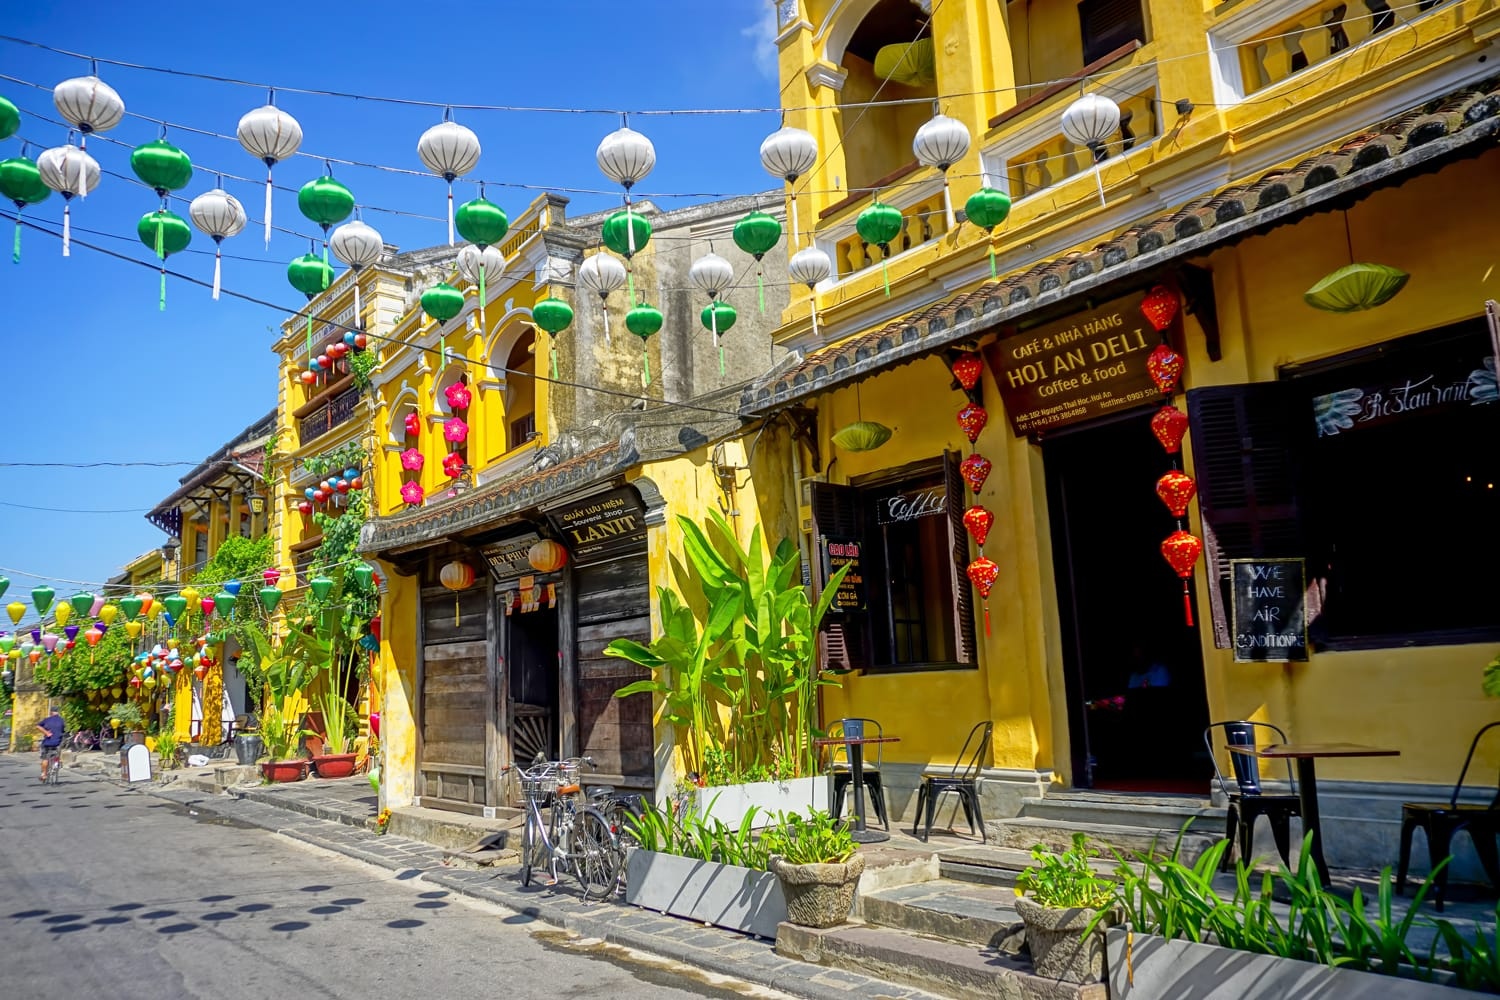 The street view of Hoi An, Vietnam.